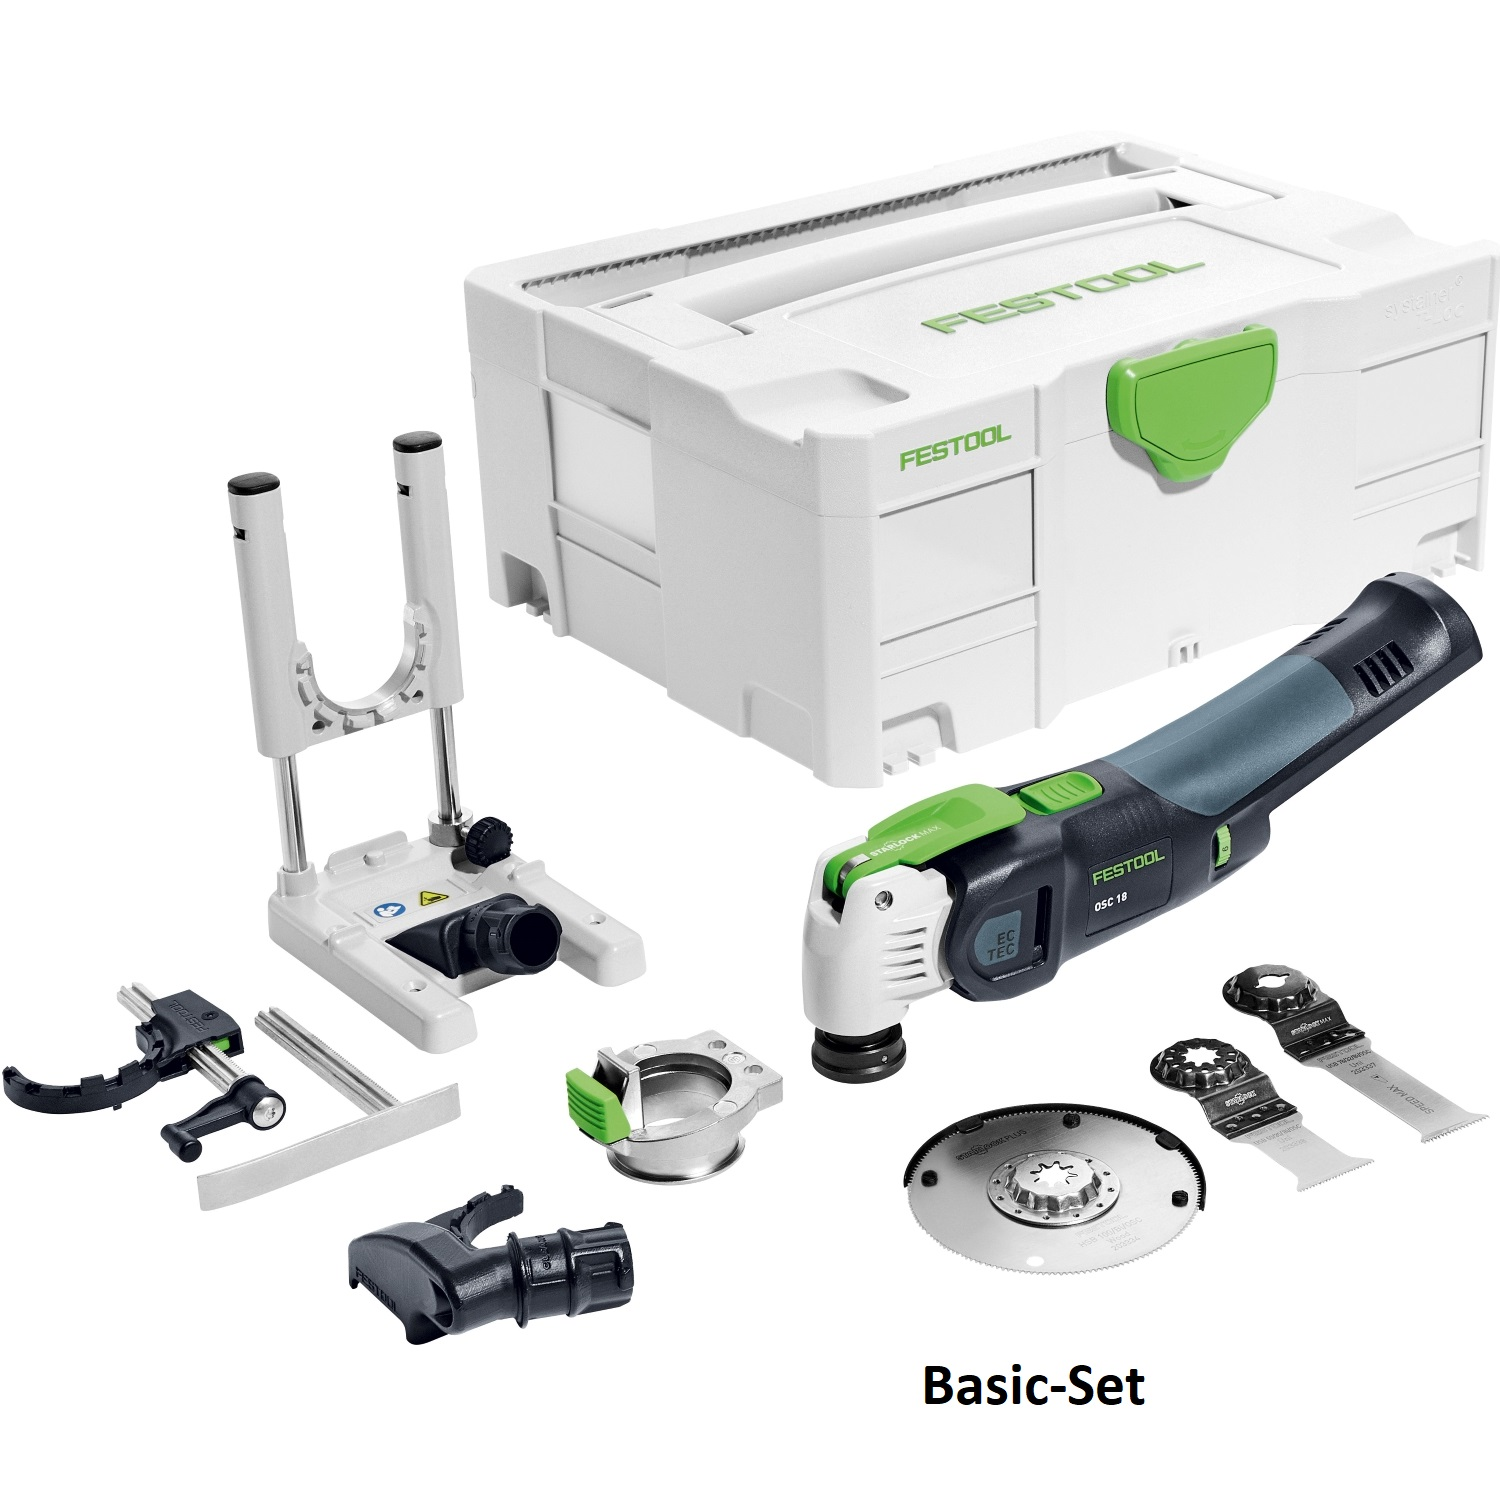 Festool 574850 Vecturo 18V Oscillating Multitool Basic Set with depth stock and additional blades